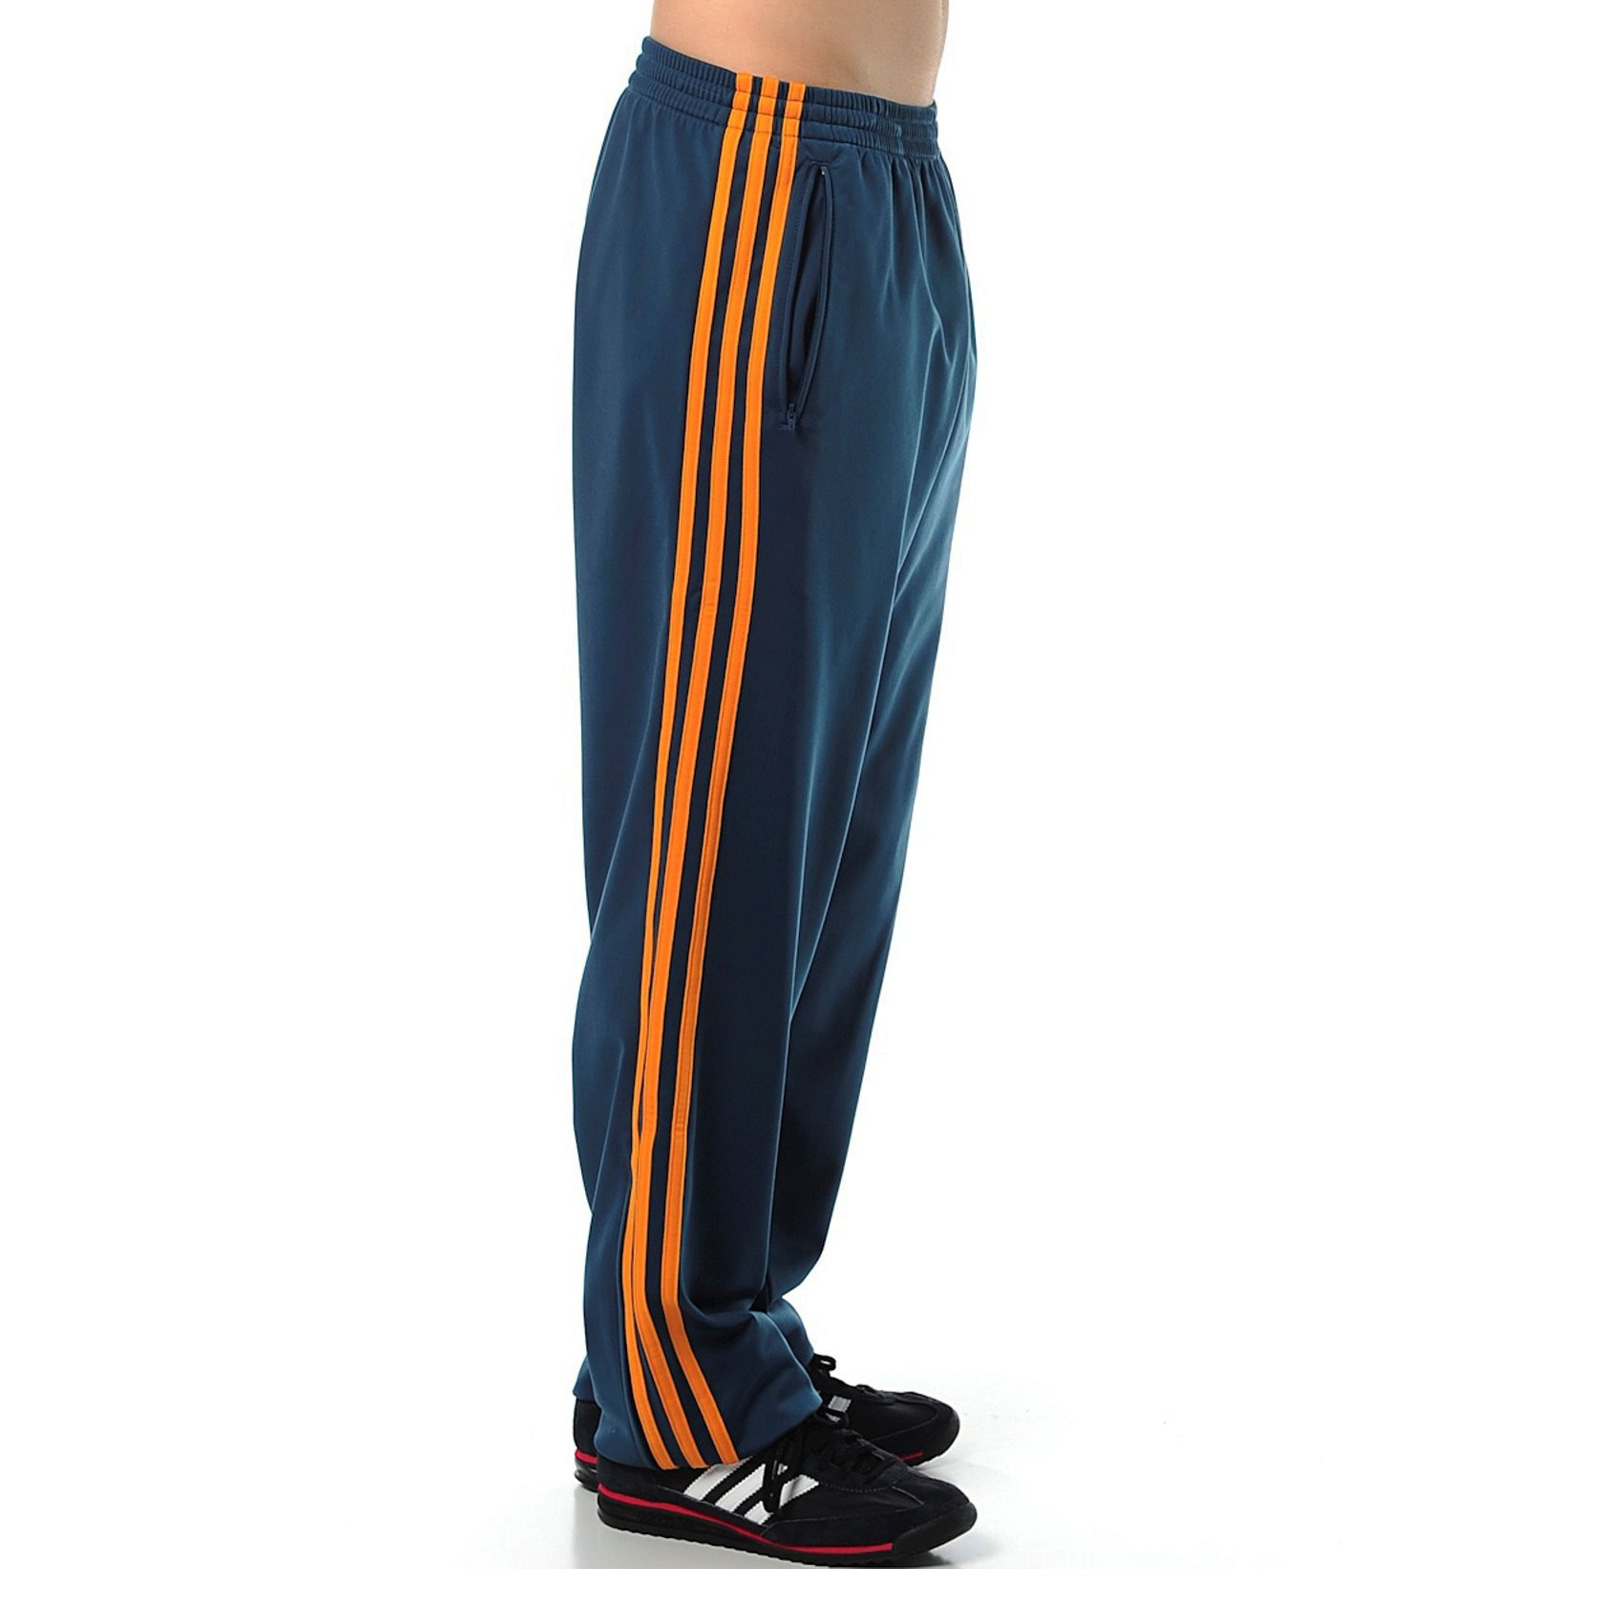 adidas Originals Herren Adi Firebird Sporthose Trainingshose Hose Blau Orange